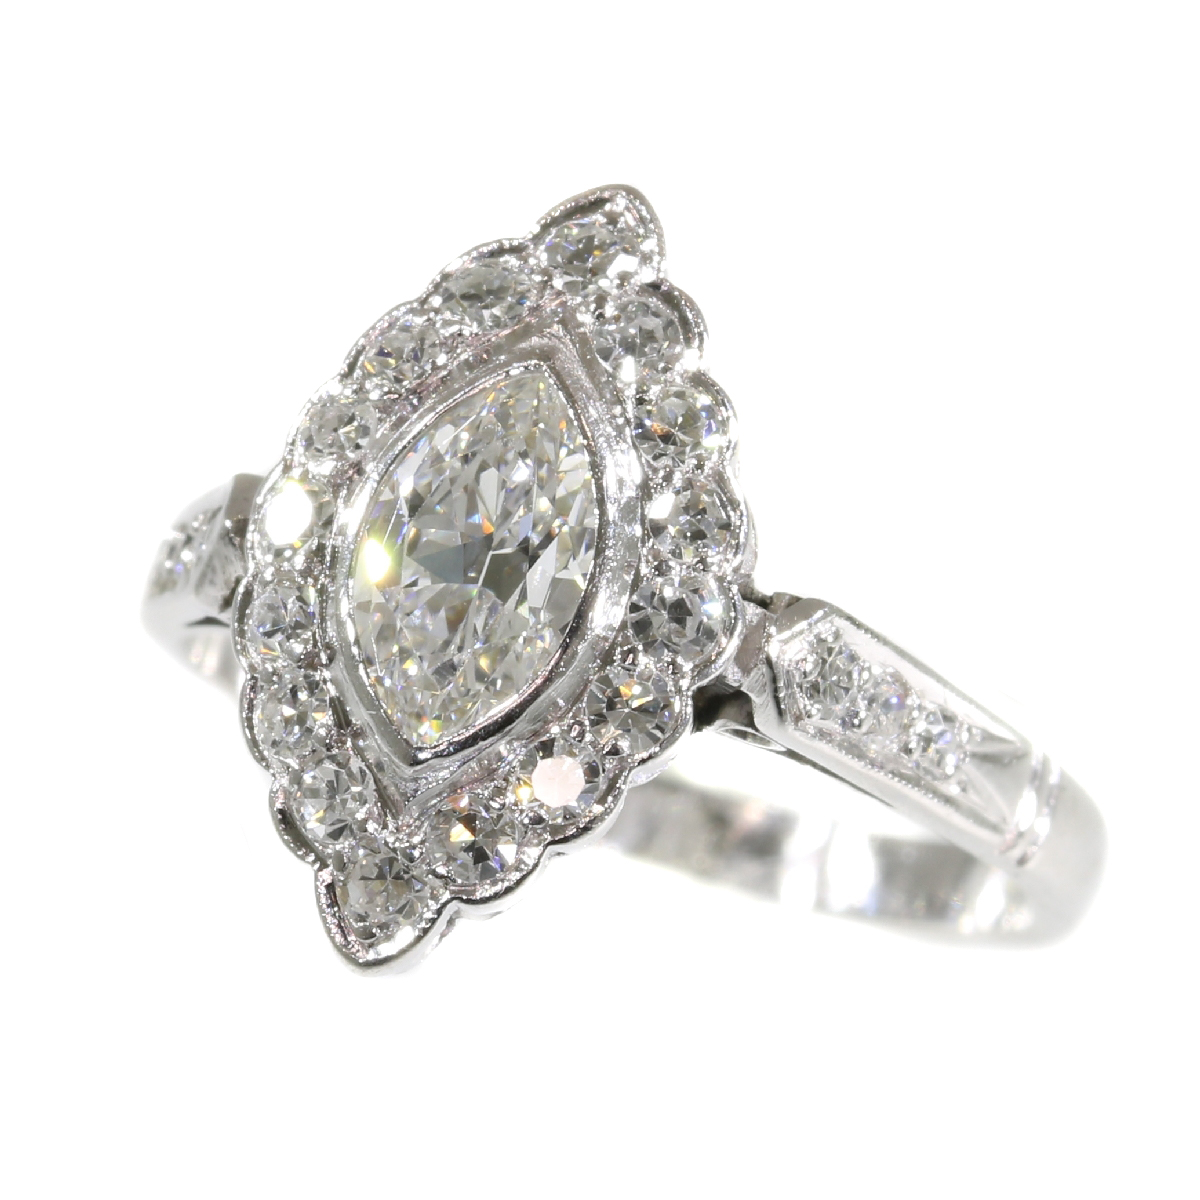 Vintage Fifties platinum engagement ring with diamonds